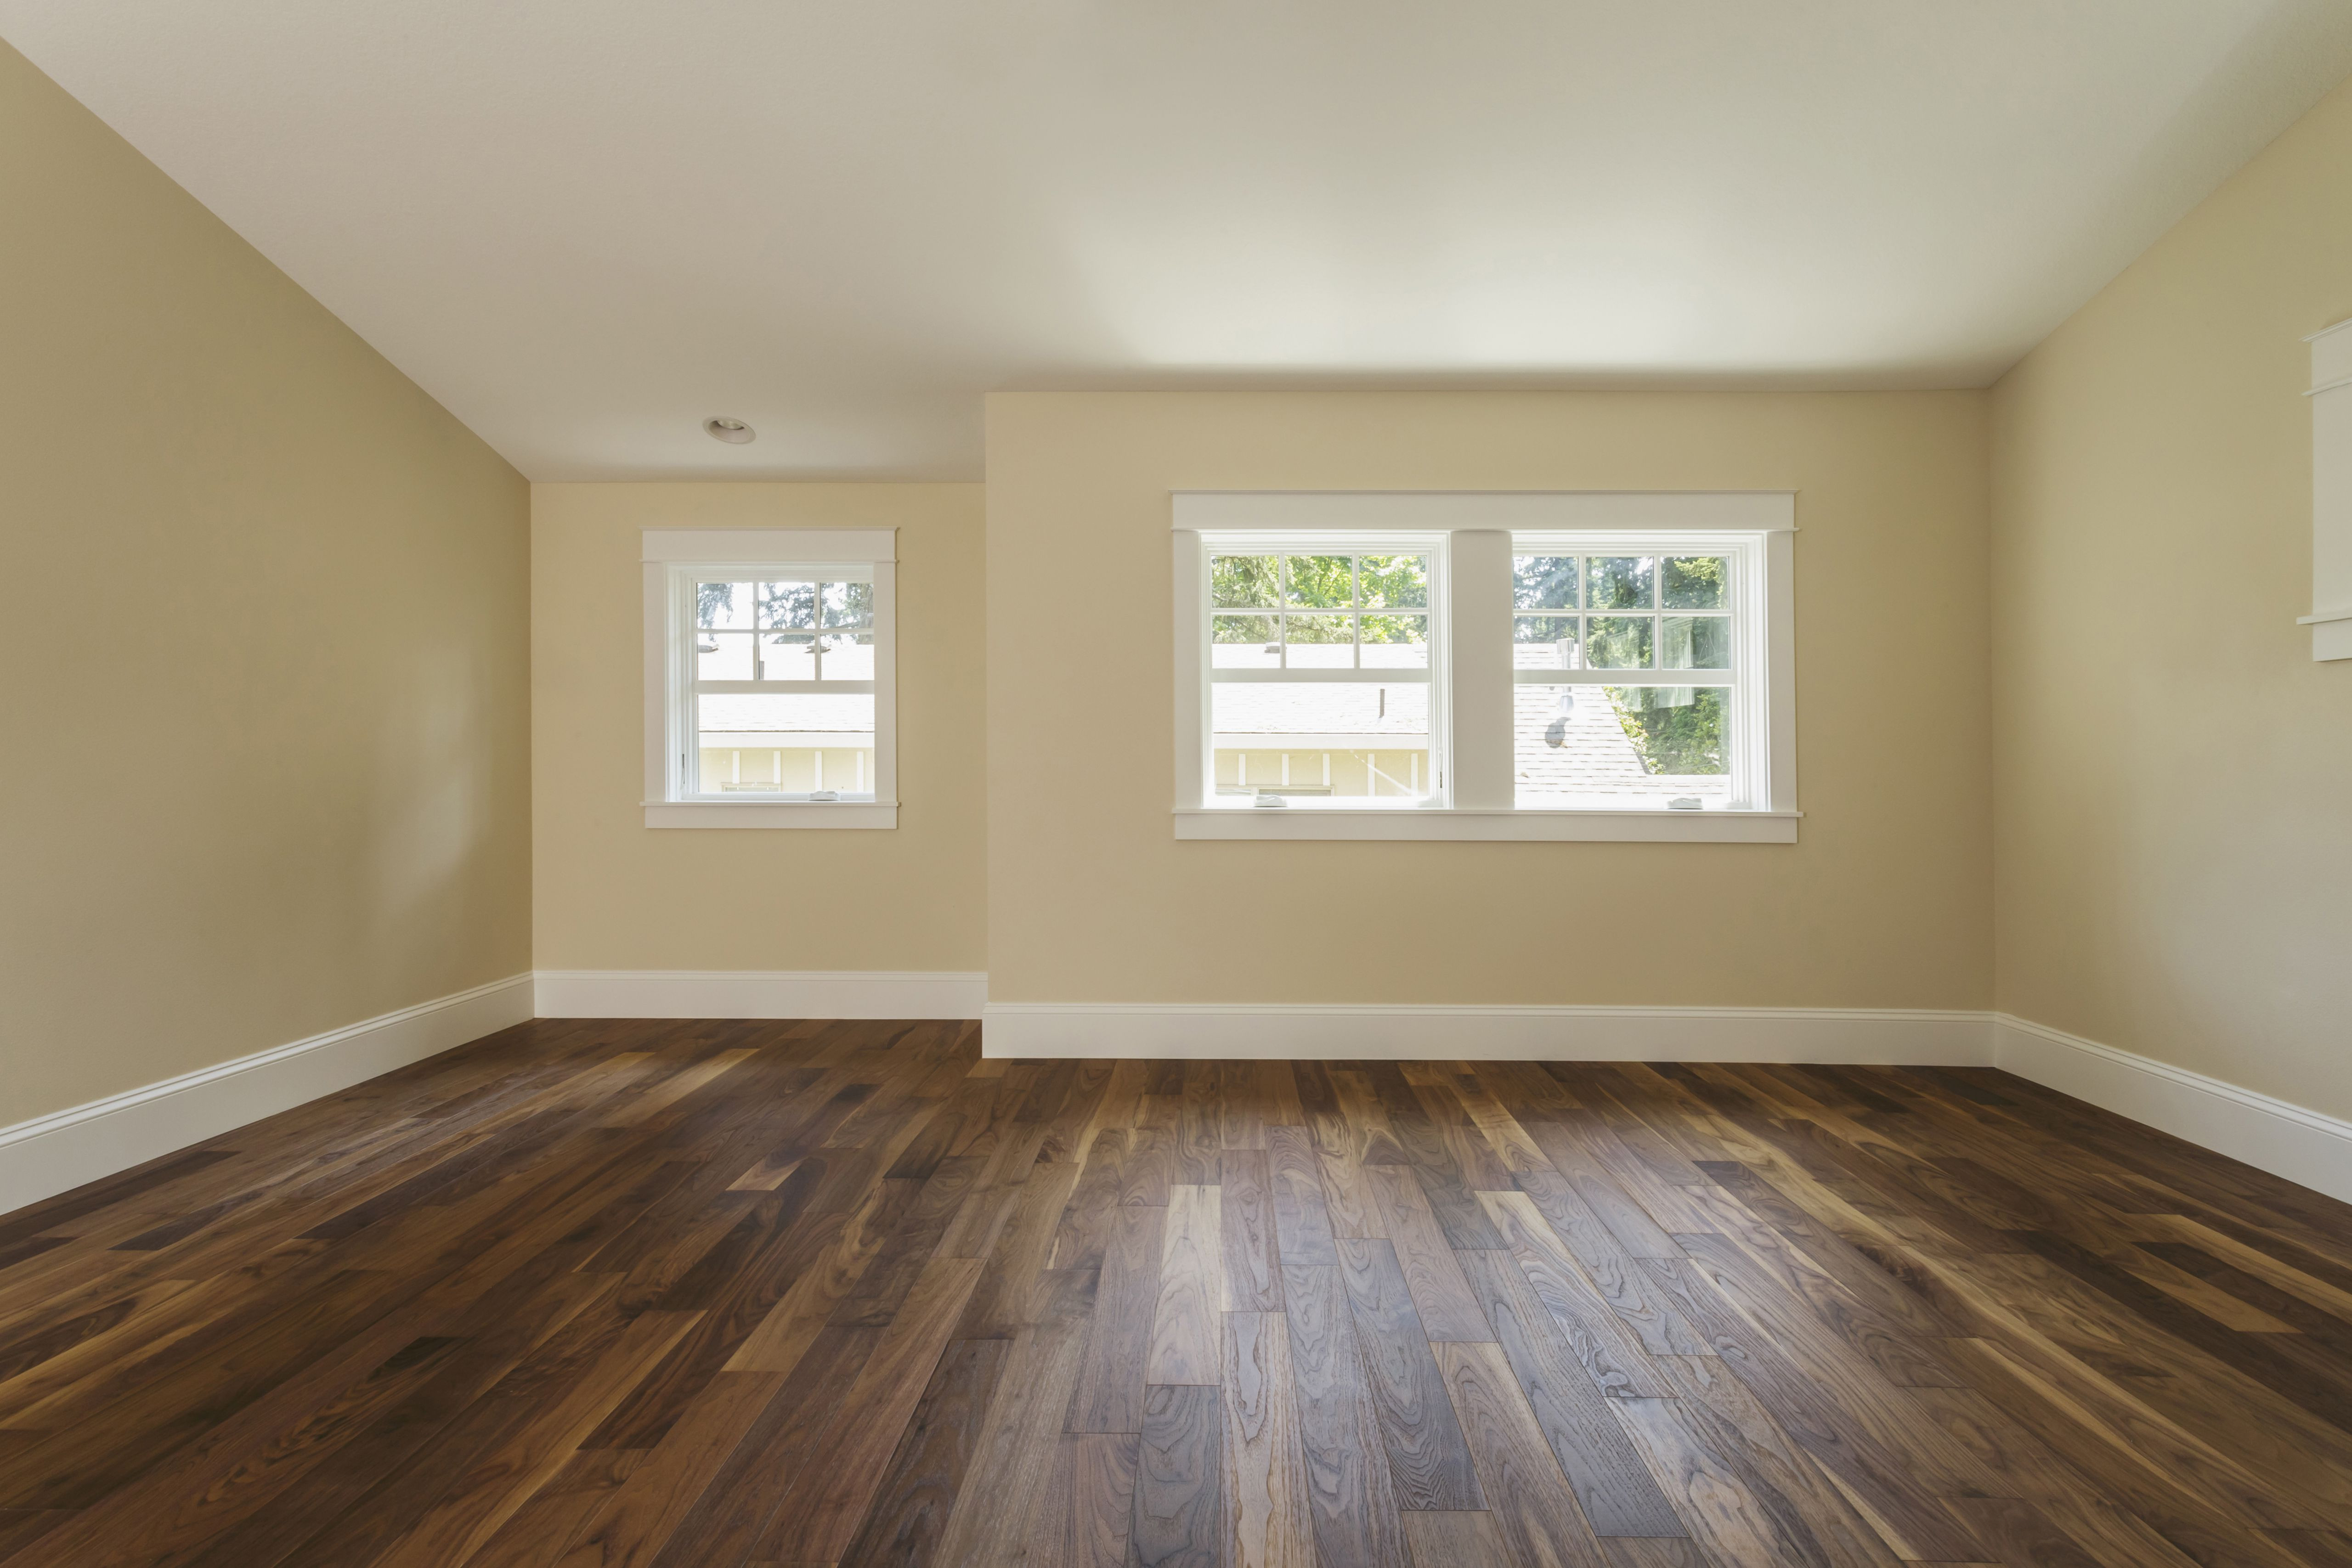 hardwood flooring nails per square foot of its easy and fast to install plank vinyl flooring with wooden floor in empty bedroom 482143001 588bd5f45f9b5874eebd56e9